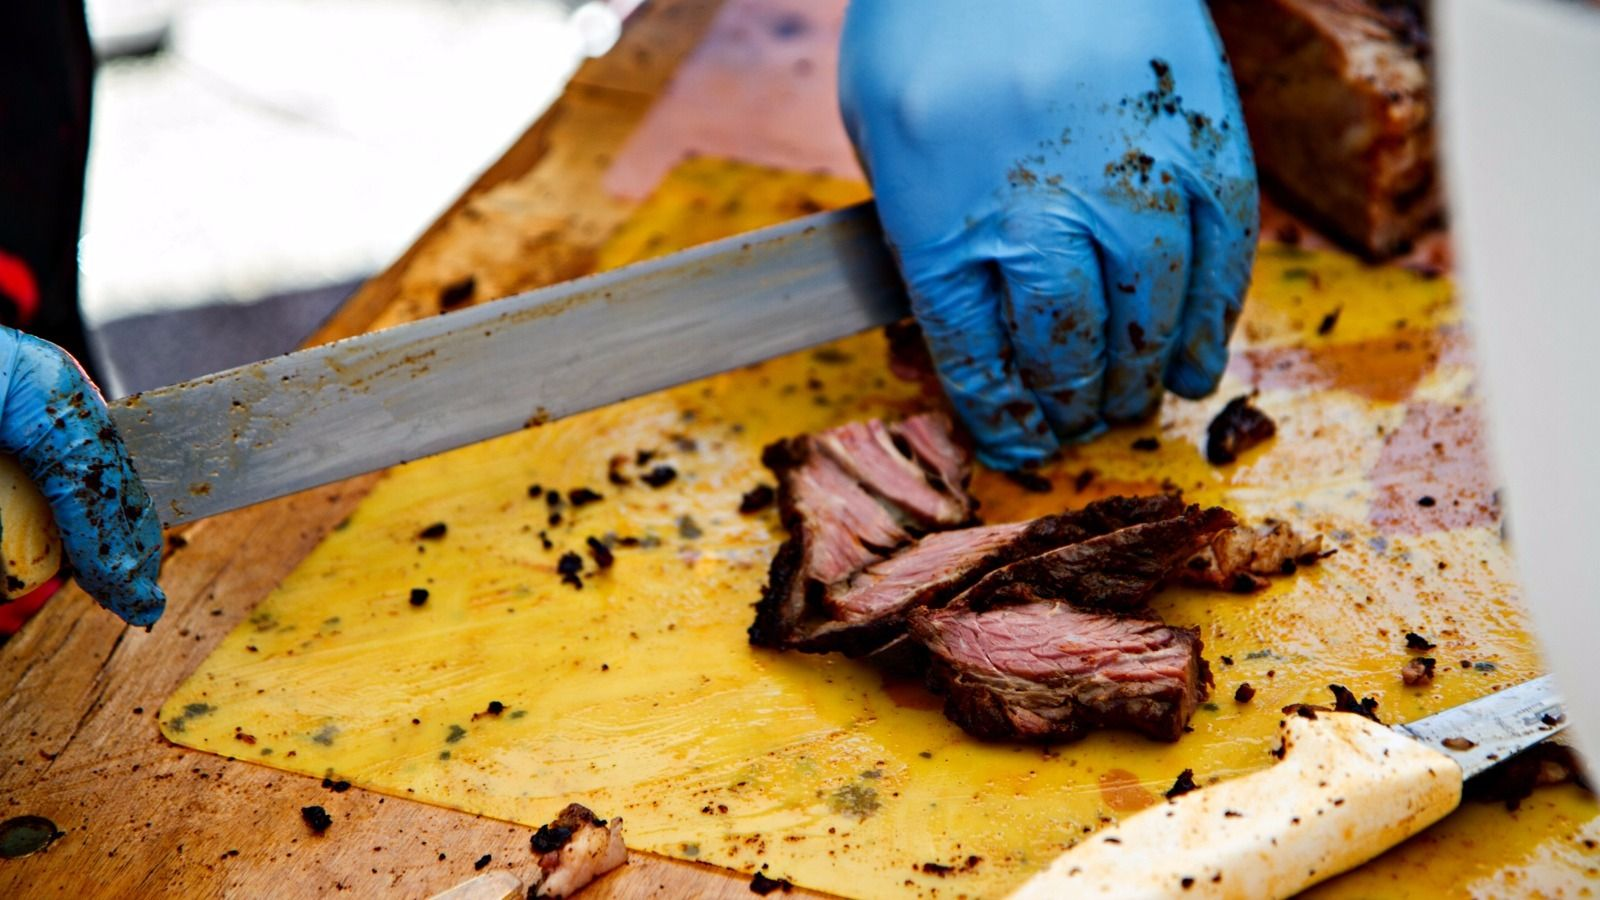 Beautiful Brisket: To ensure kosher standards, the meat is provided by the Jewish organizations that host the events.